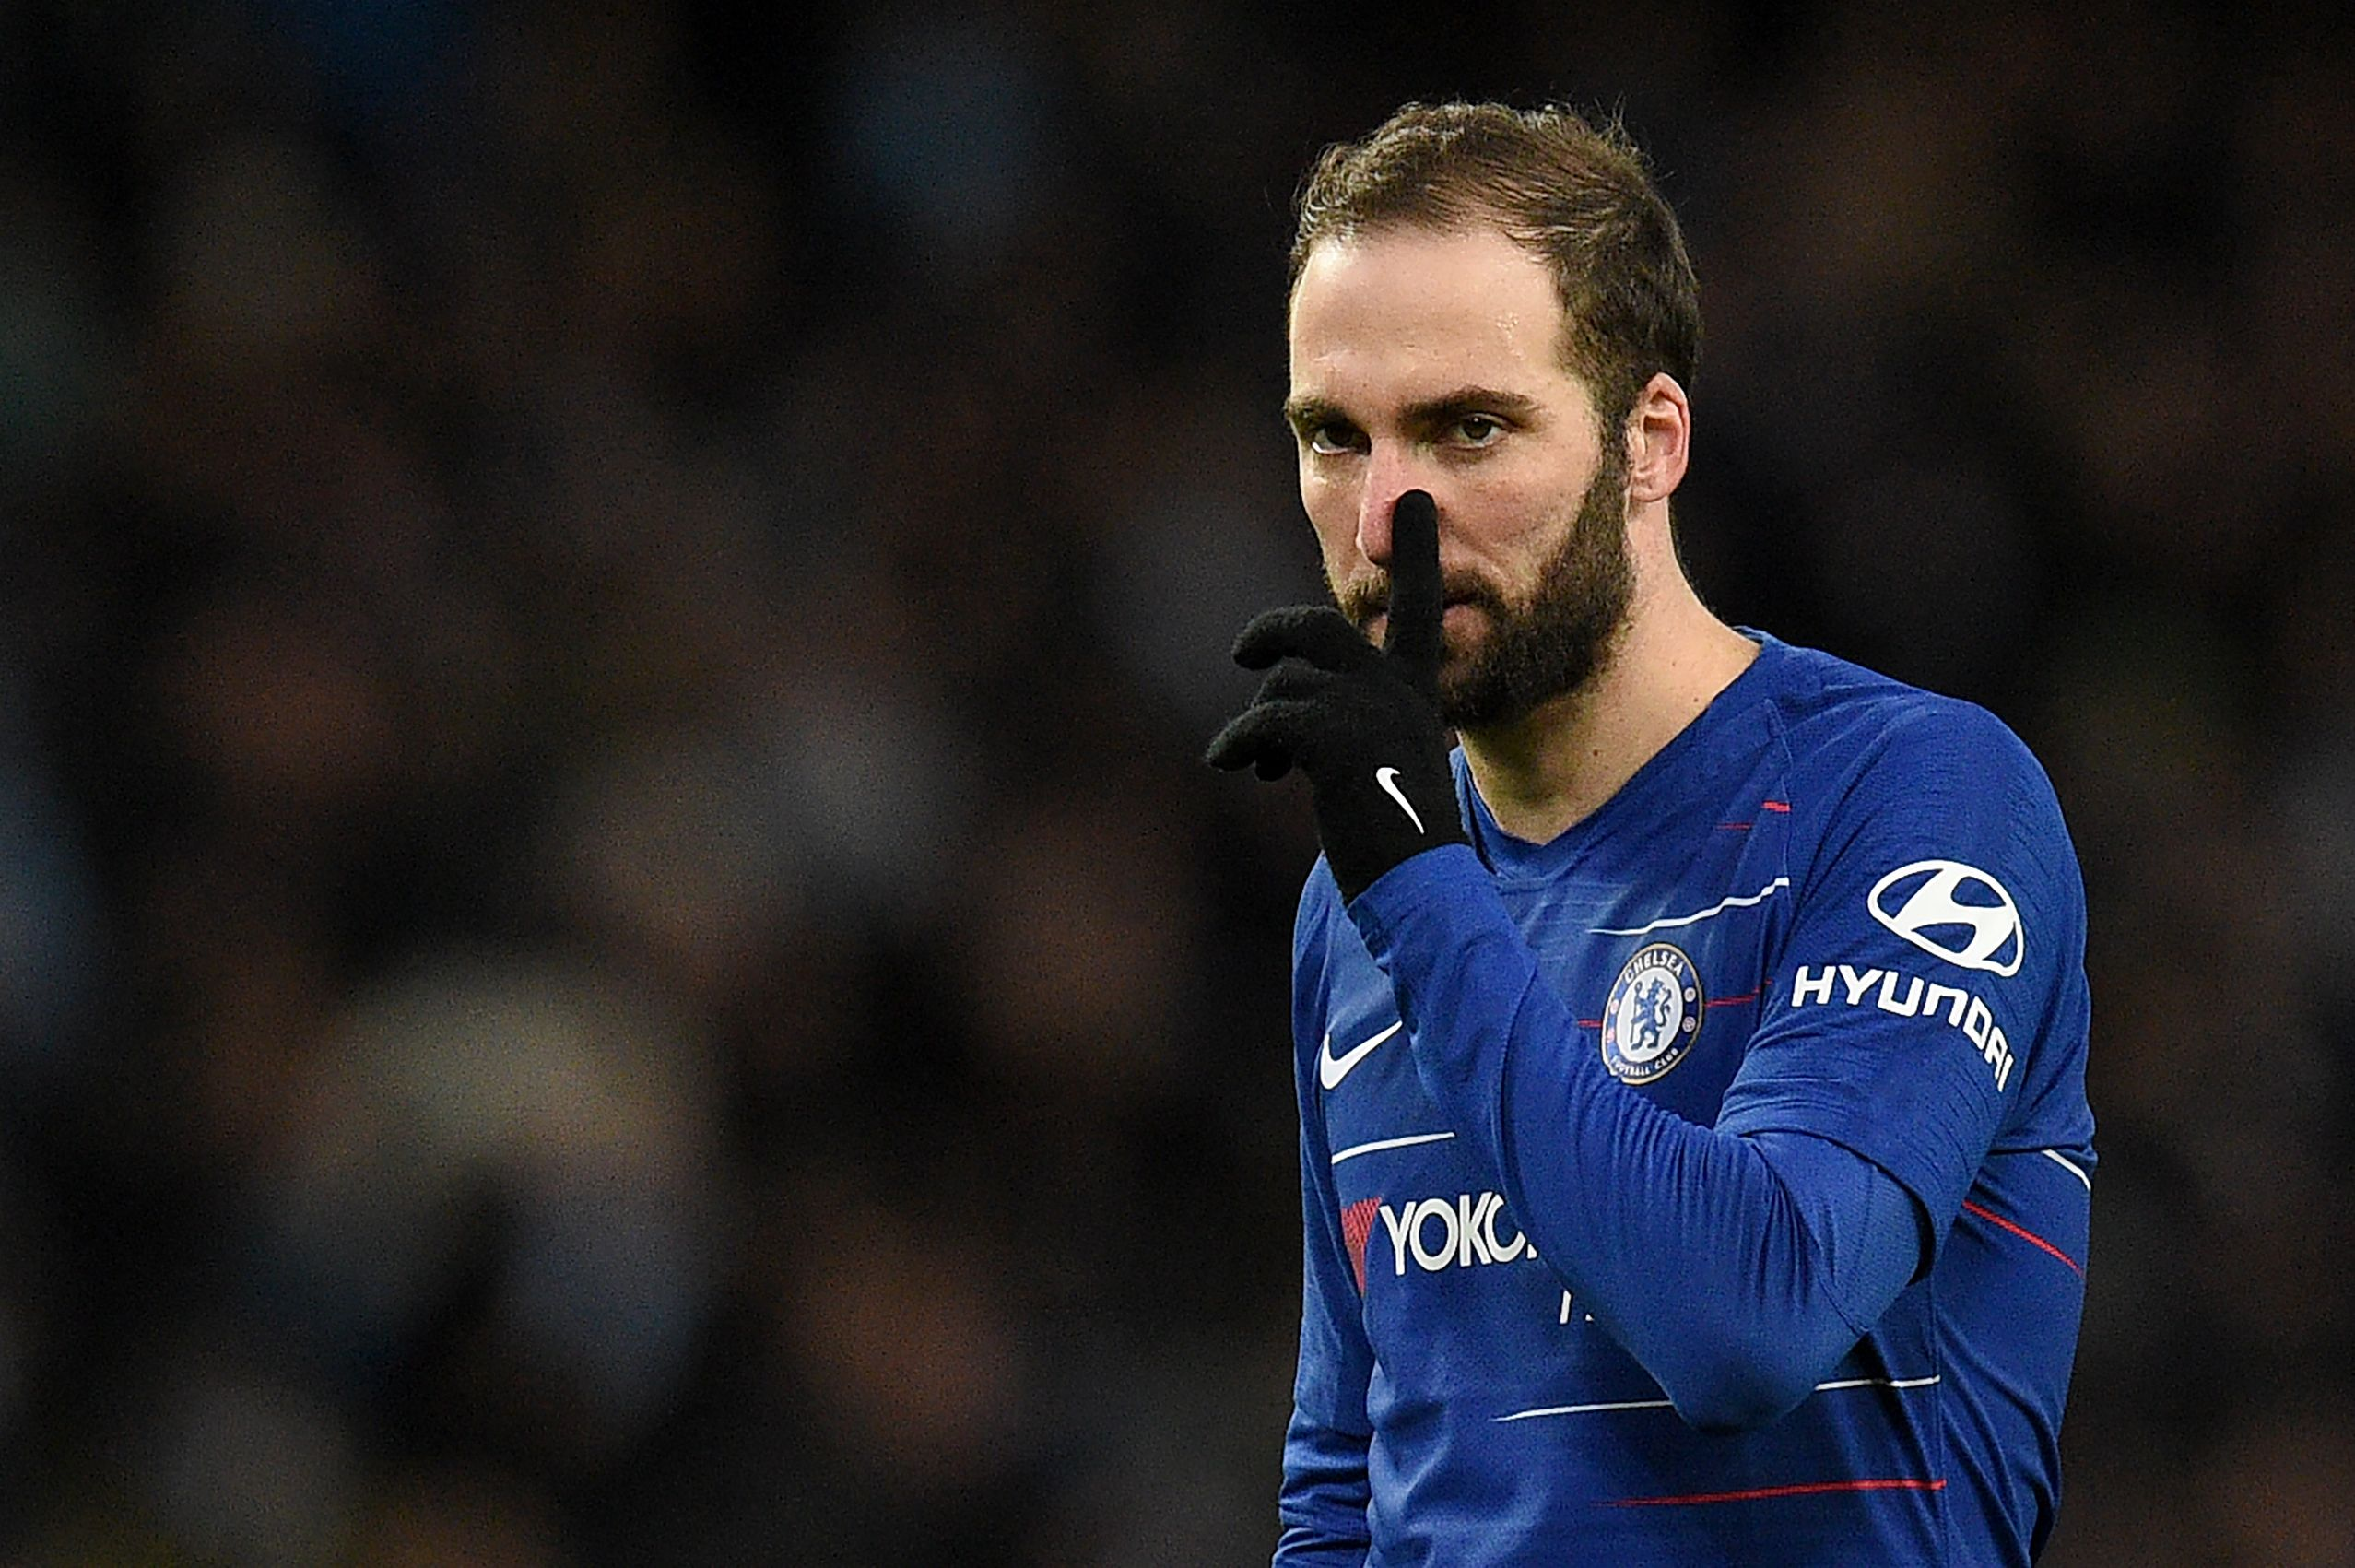 Chelsea's Argentinian striker Gonzalo Higuain gestures the English Premier League football match between Manchester City and Burnley at the Etihad Stadium in Manchester, north west England, on February 10, 2019. (Photo by Oli SCARFF / AFP) / RESTRICTED TO EDITORIAL USE. No use with unauthorized audio, video, data, fixture lists, club/league logos or 'live' services. Online in-match use limited to 120 images. An additional 40 images may be used in extra time. No video emulation. Social media in-match use limited to 120 images. An additional 40 images may be used in extra time. No use in betting publications, games or single club/league/player publications. /